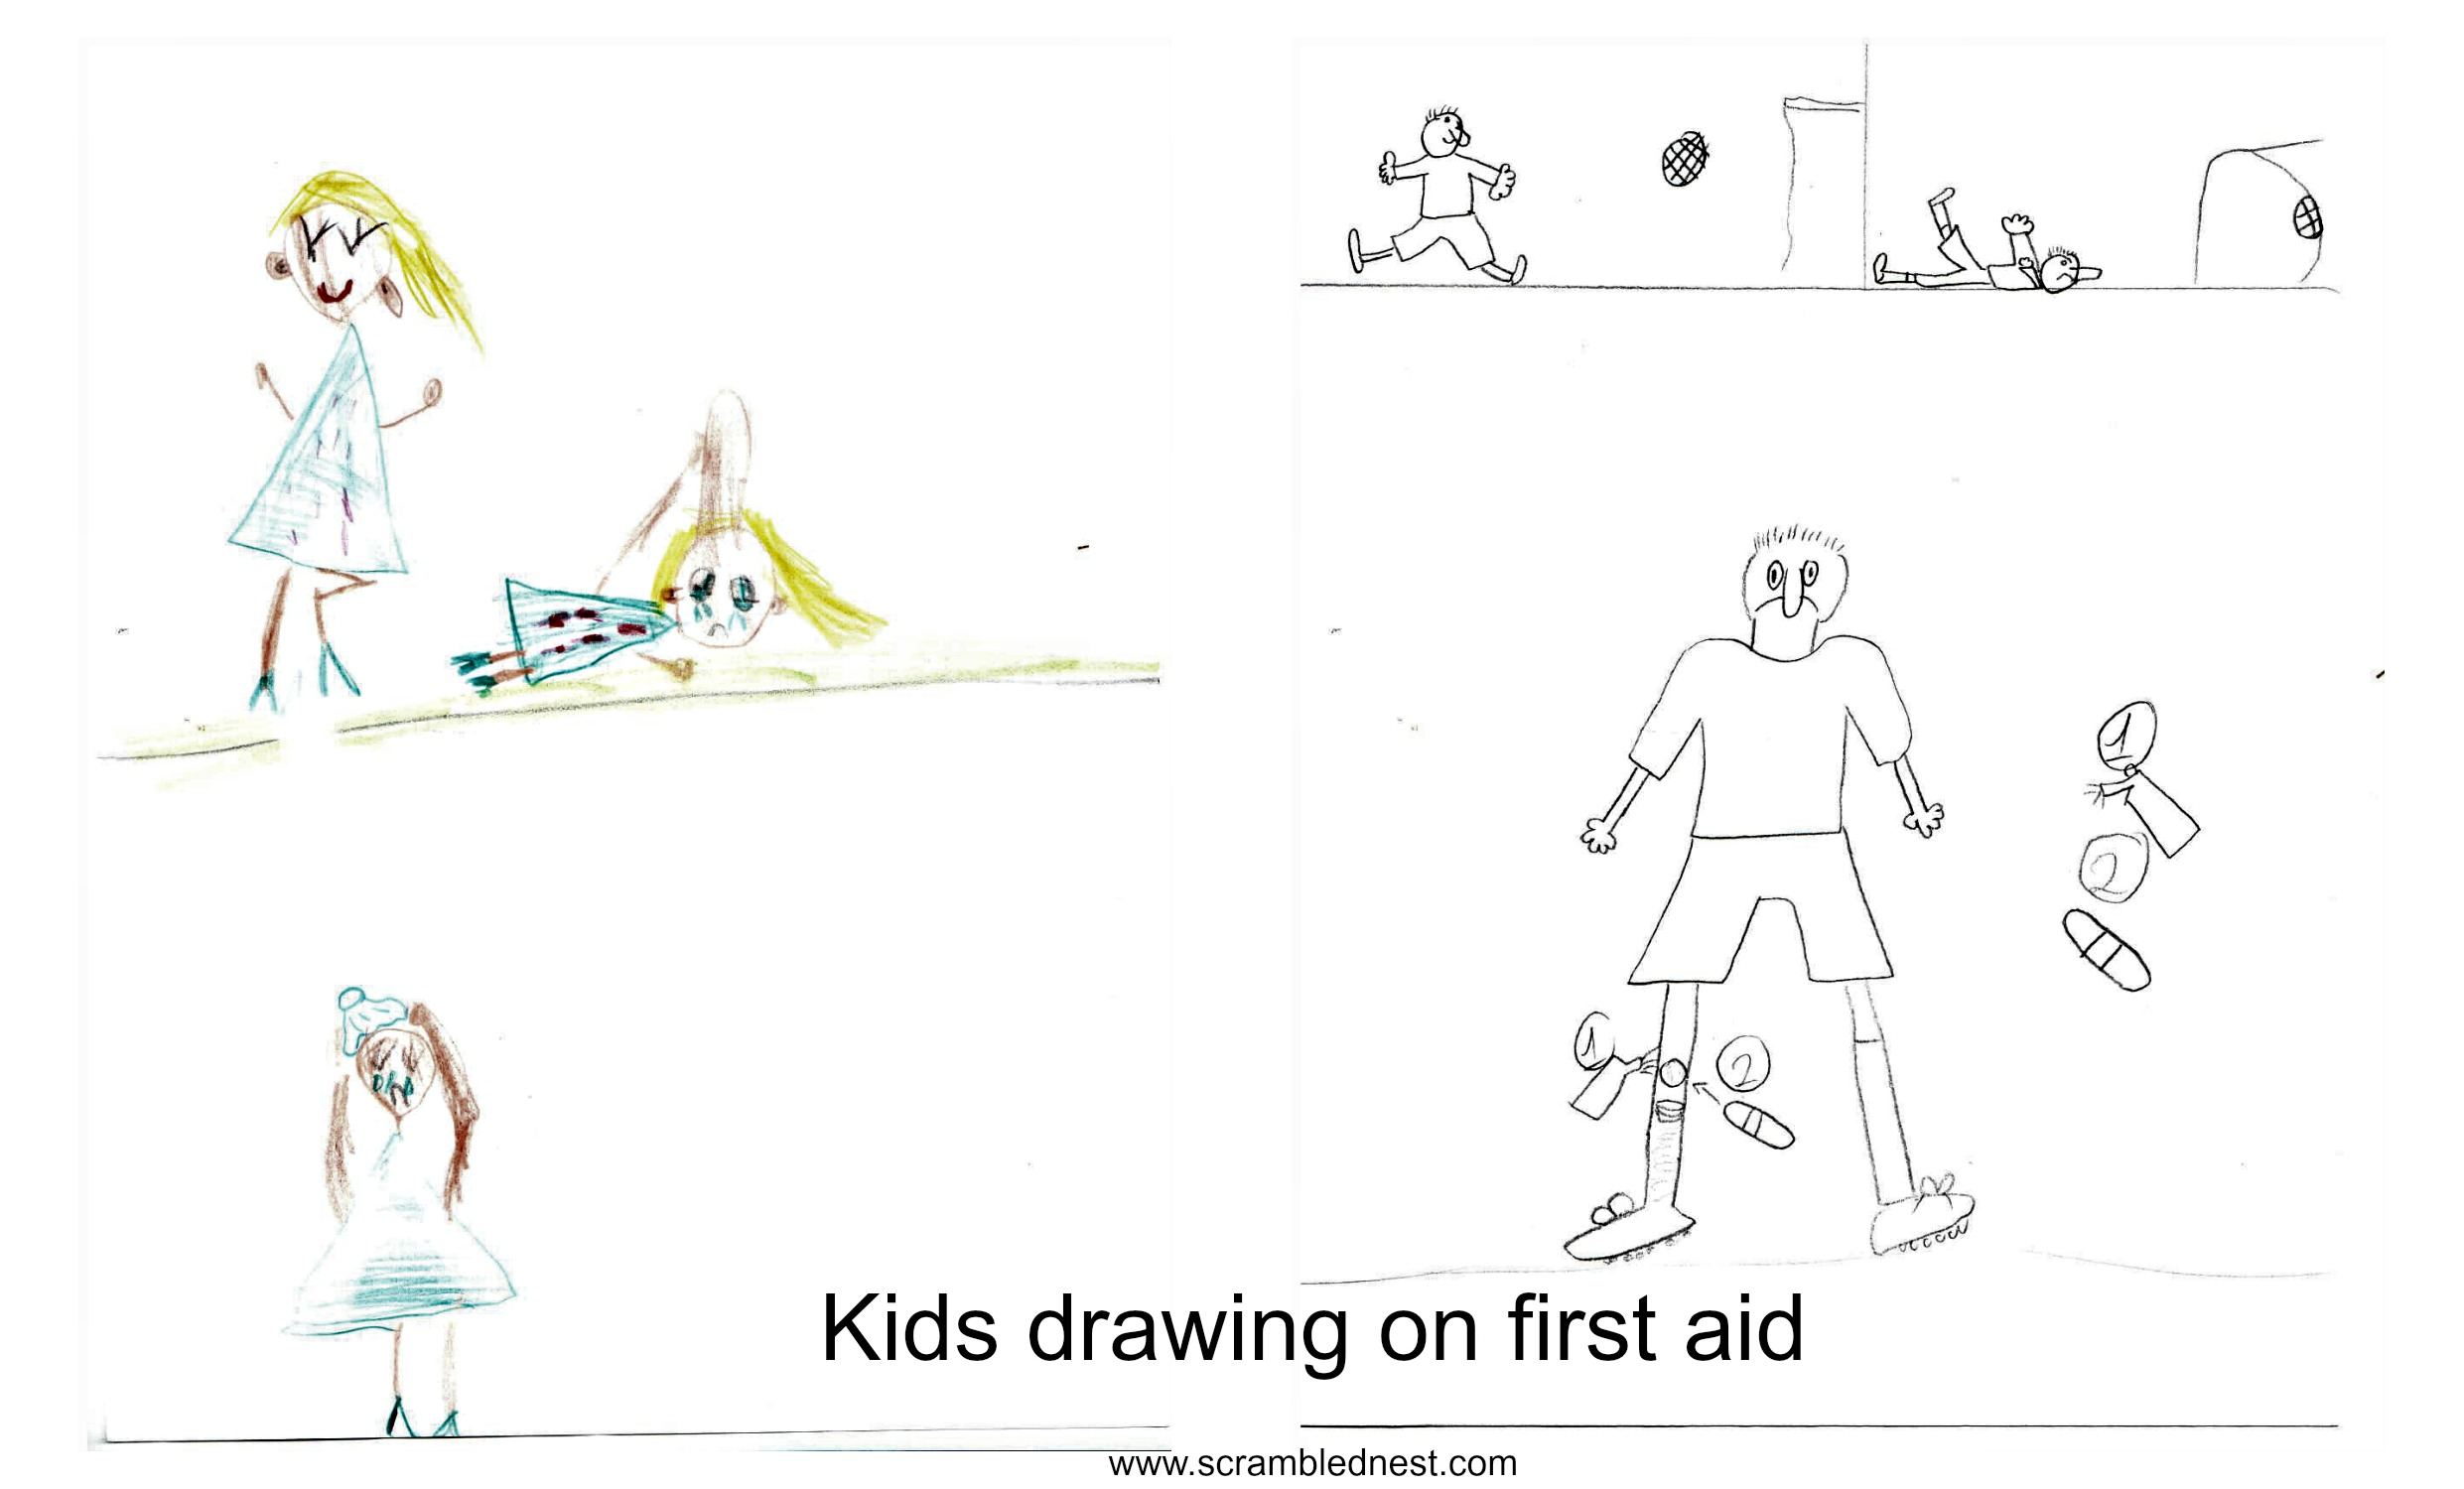 Kids drawings on first aid